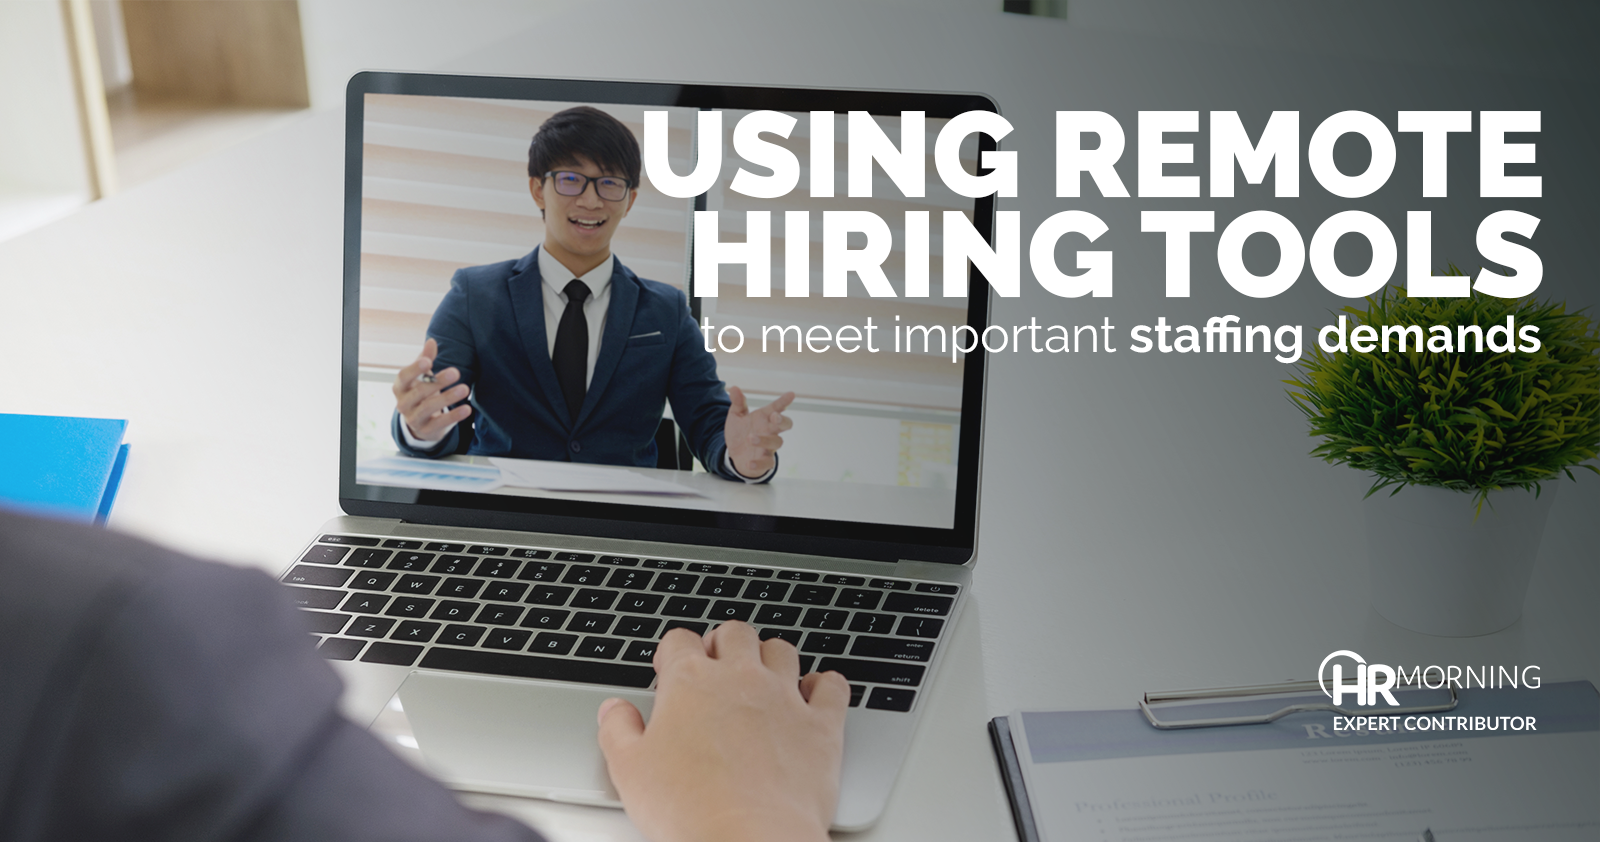 using remote hiring tools to meet important staffing demands